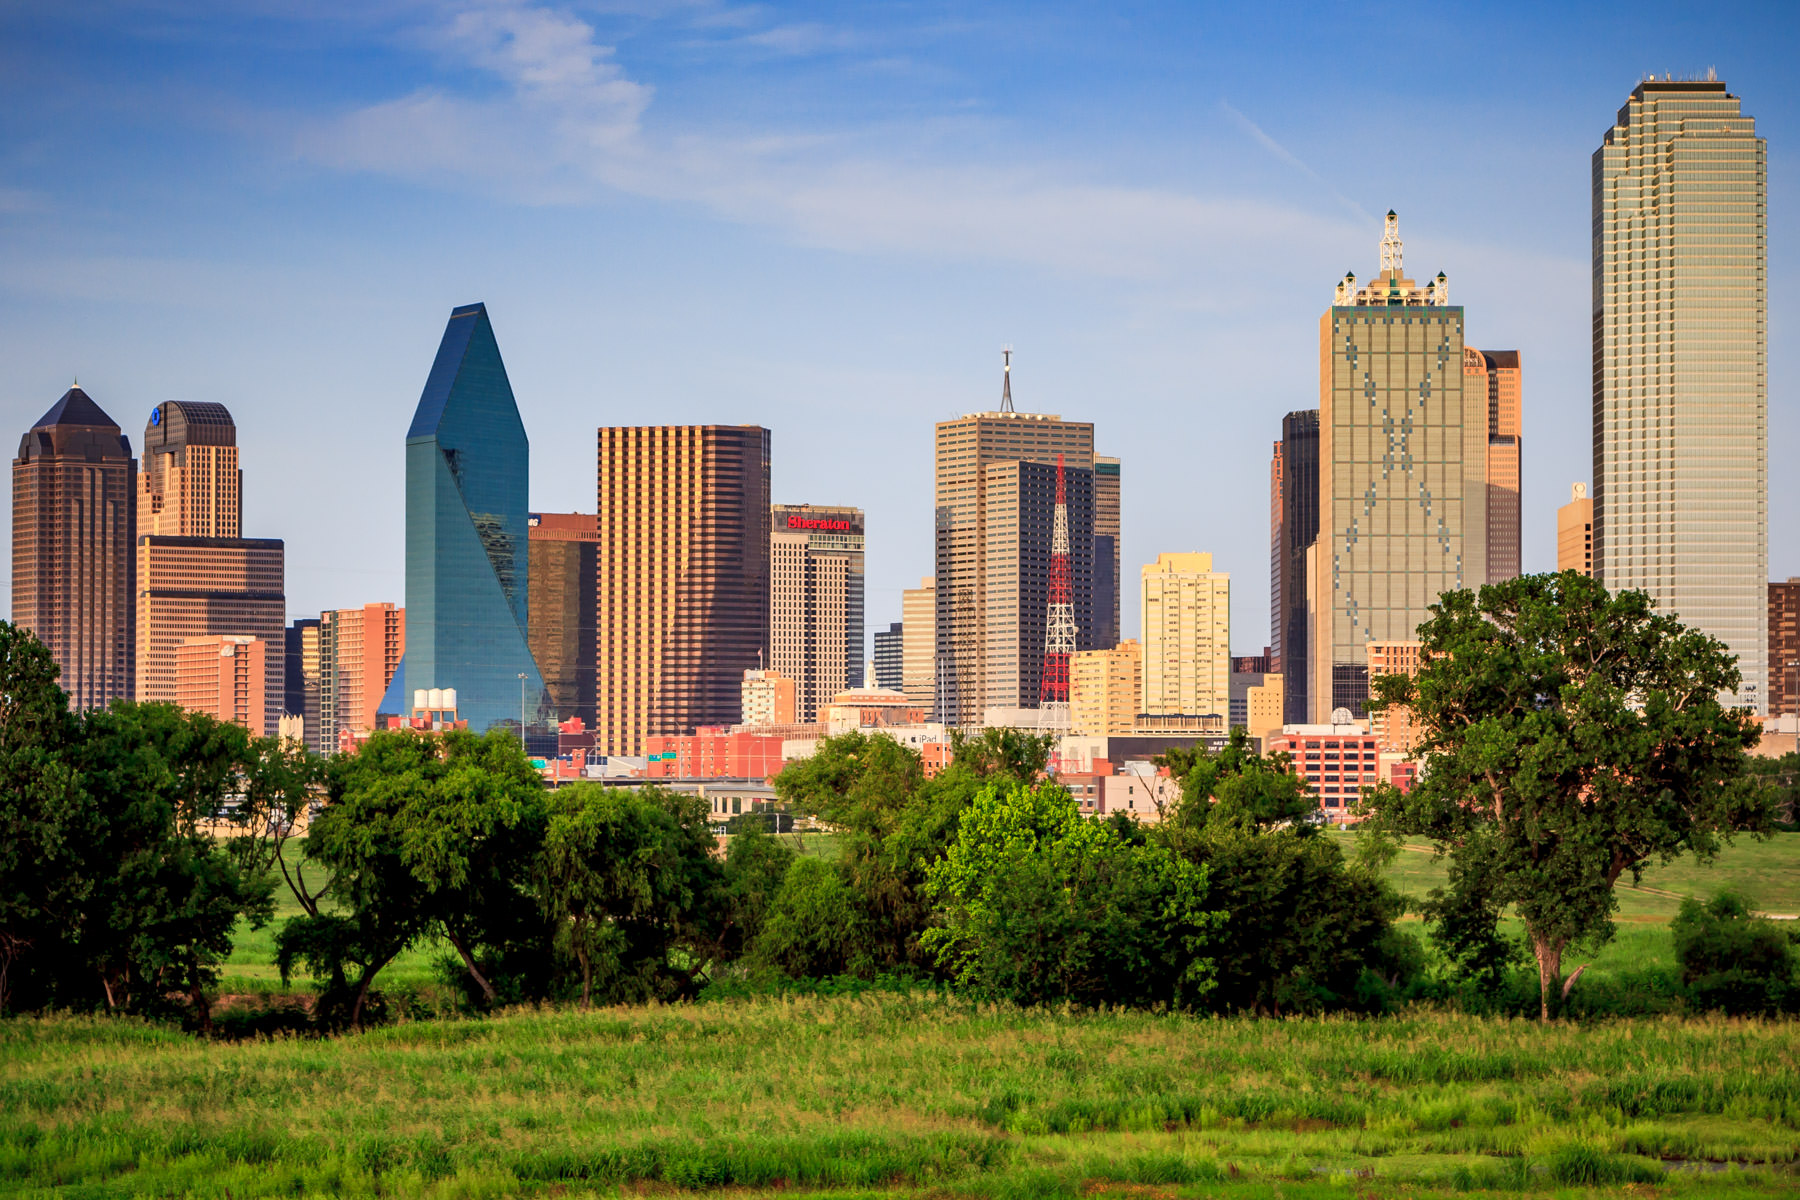 The Dallas skyline rises from the North Texas prairie as seen from the banks of the Trinity River west of downtown.